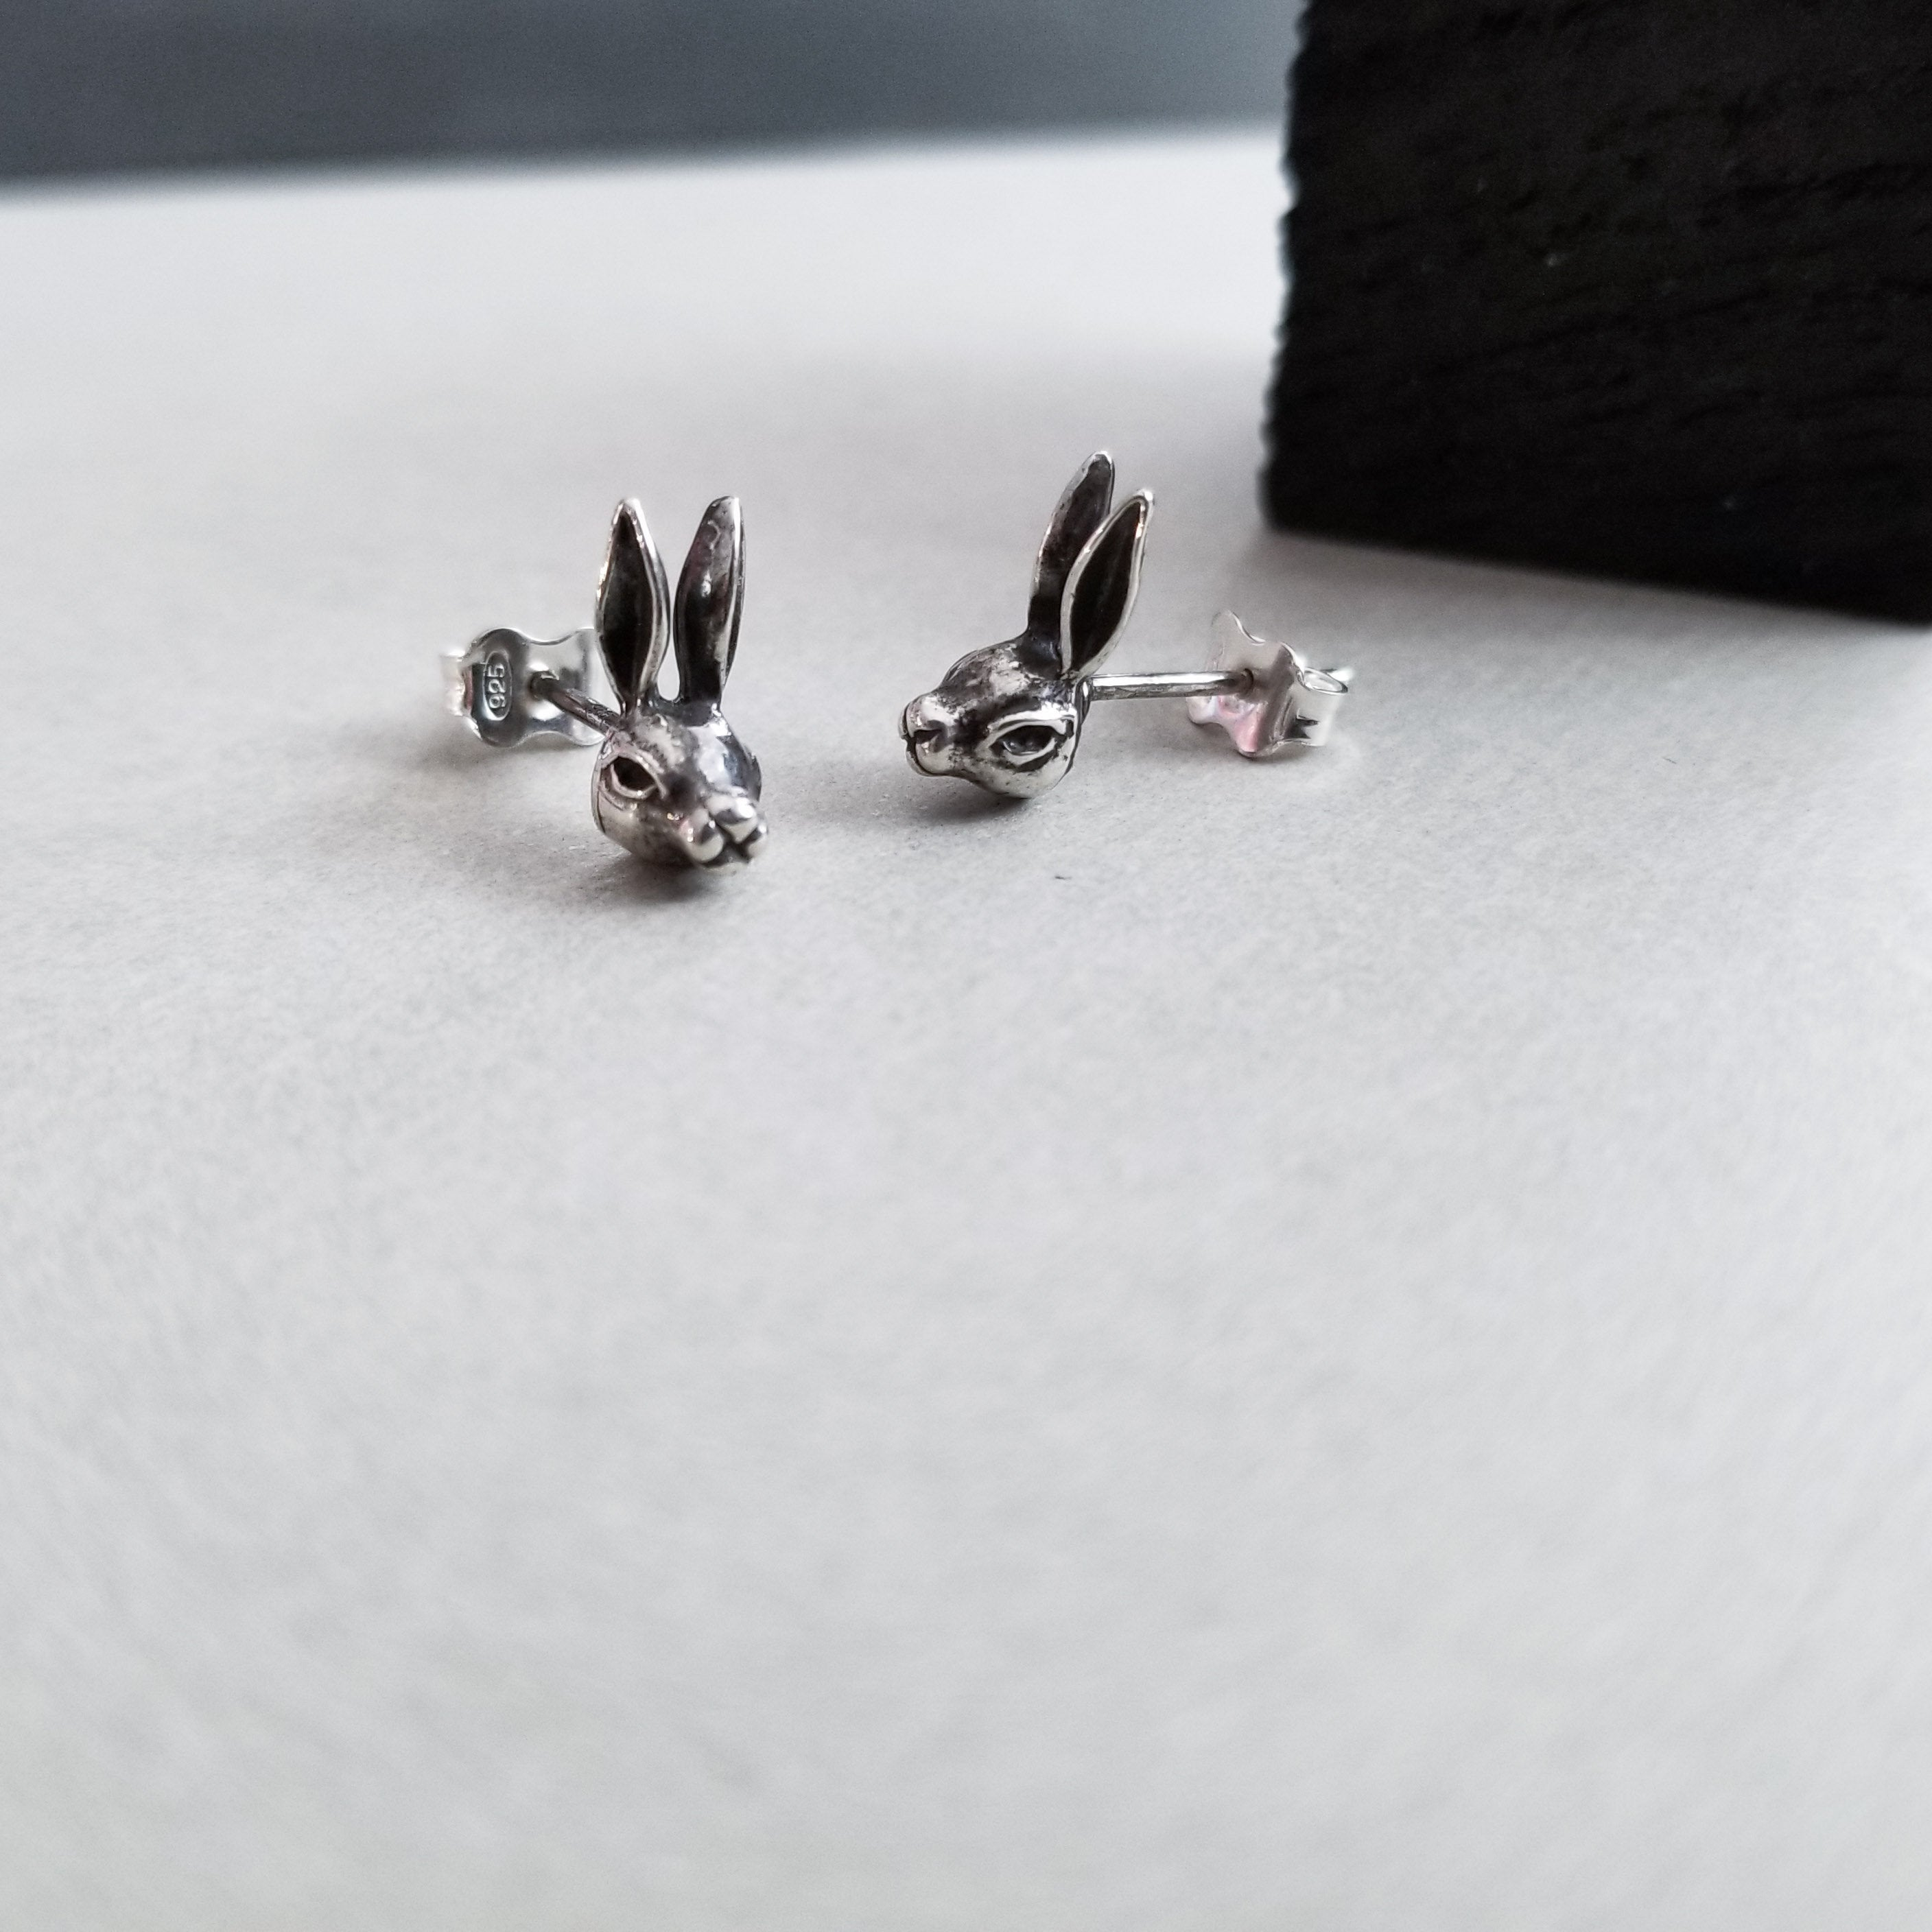 Silver Bunny Earrings - Inchoo Bijoux